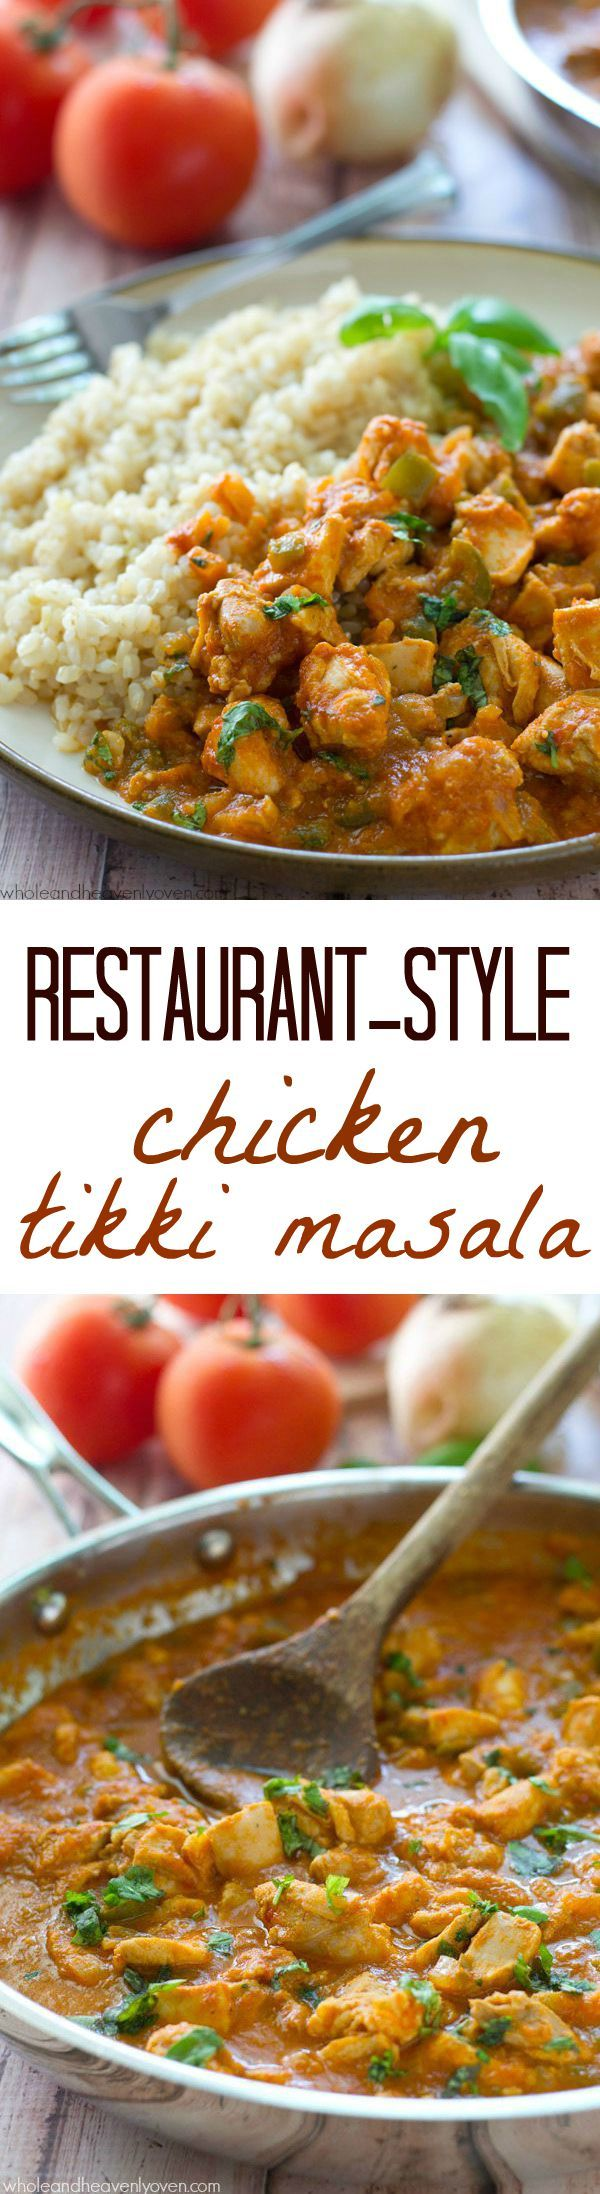 Chicken thighs are marinated in a flavorful, spiced yogurt marinade, then grilled and thrown into an incredible made-from-scratch tikki masala tomato sauce.---Serve with rice for a winner weeknight dinner! @WholeHeavenly